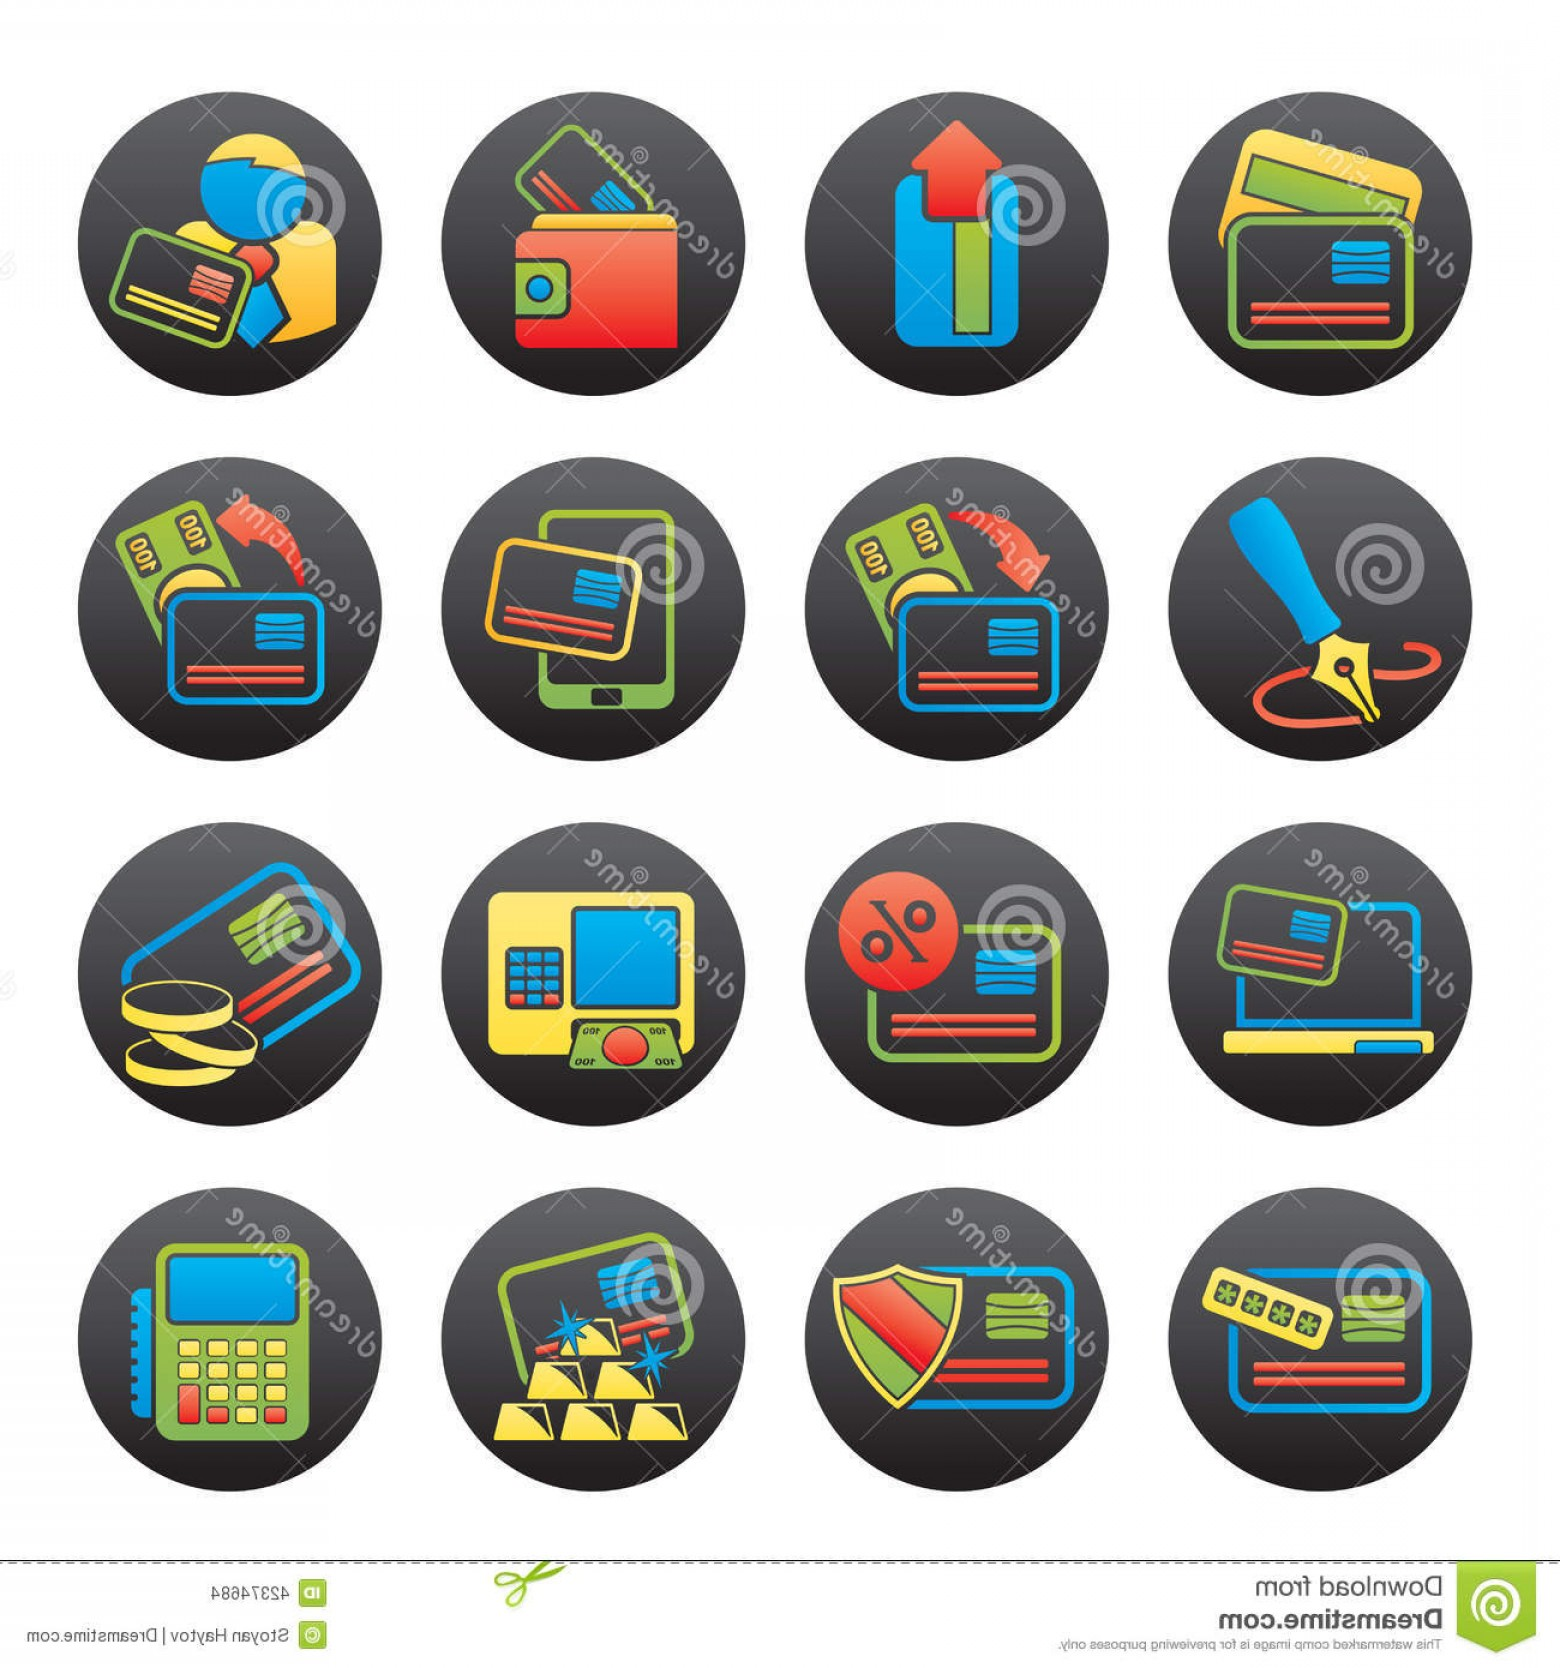 Point Of Sale Icon Vector: Stock Illustration Credit Card Pos Terminal Atm Icons Vector Icon Set Image